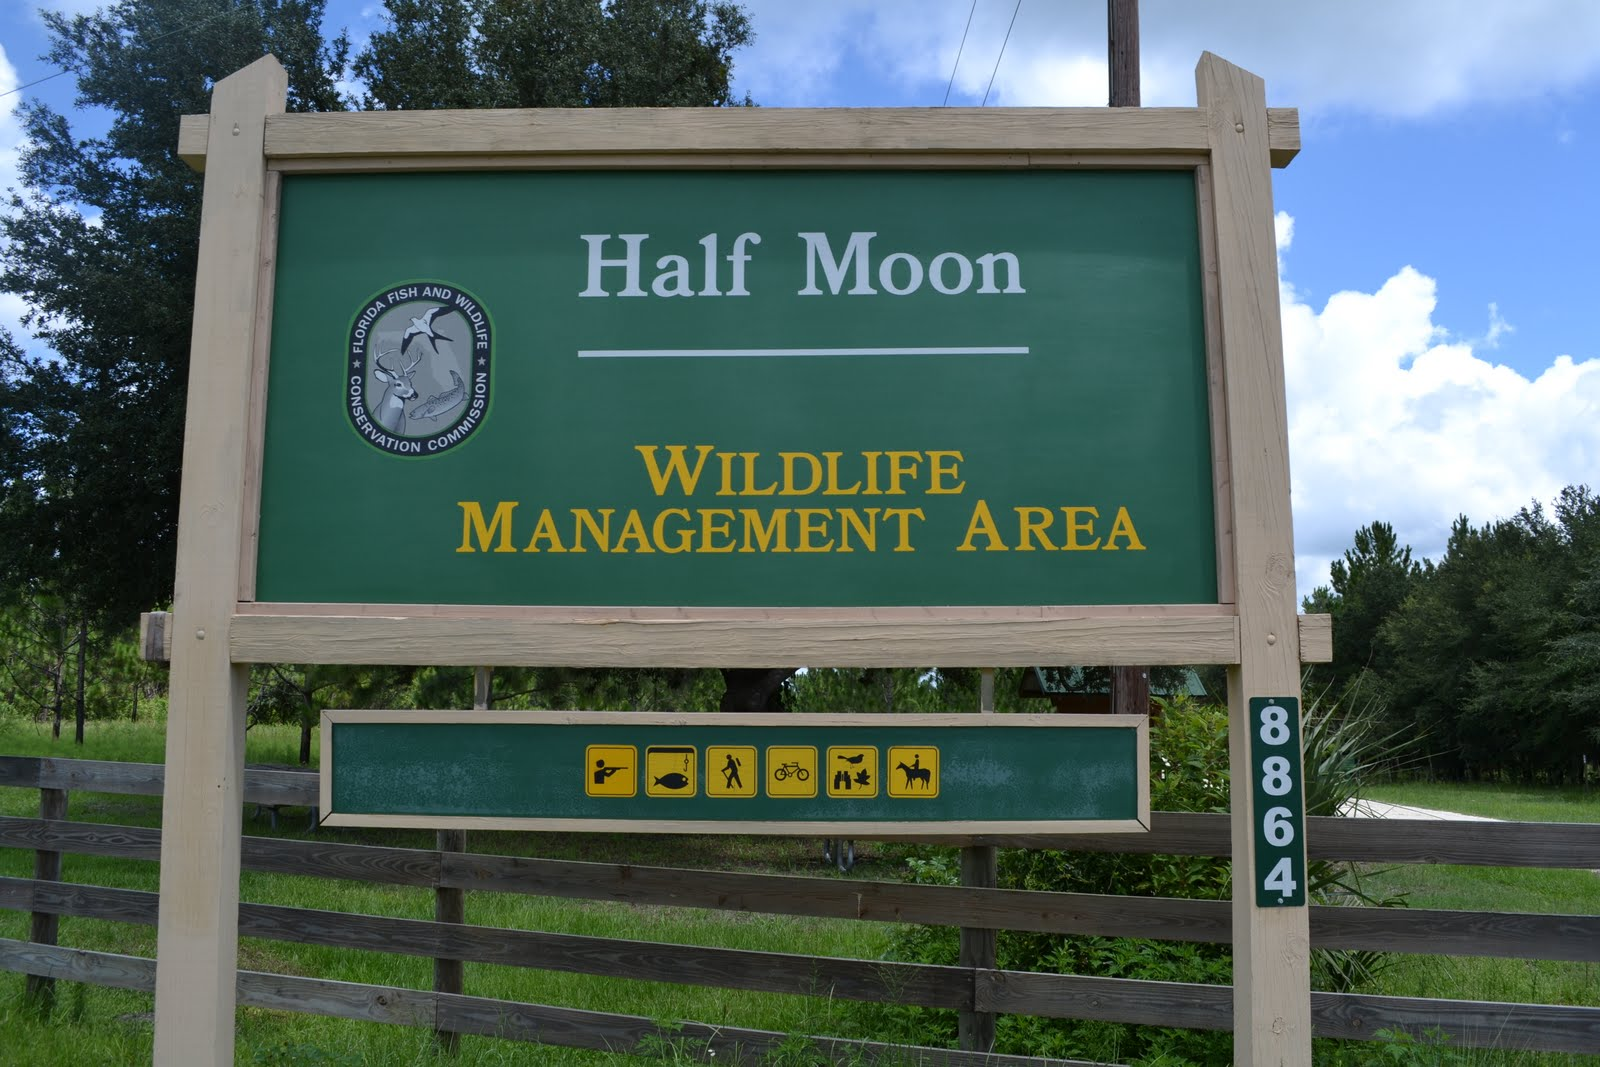 The Wild Life Deer Plans Amp Scouting Half Moon Wma